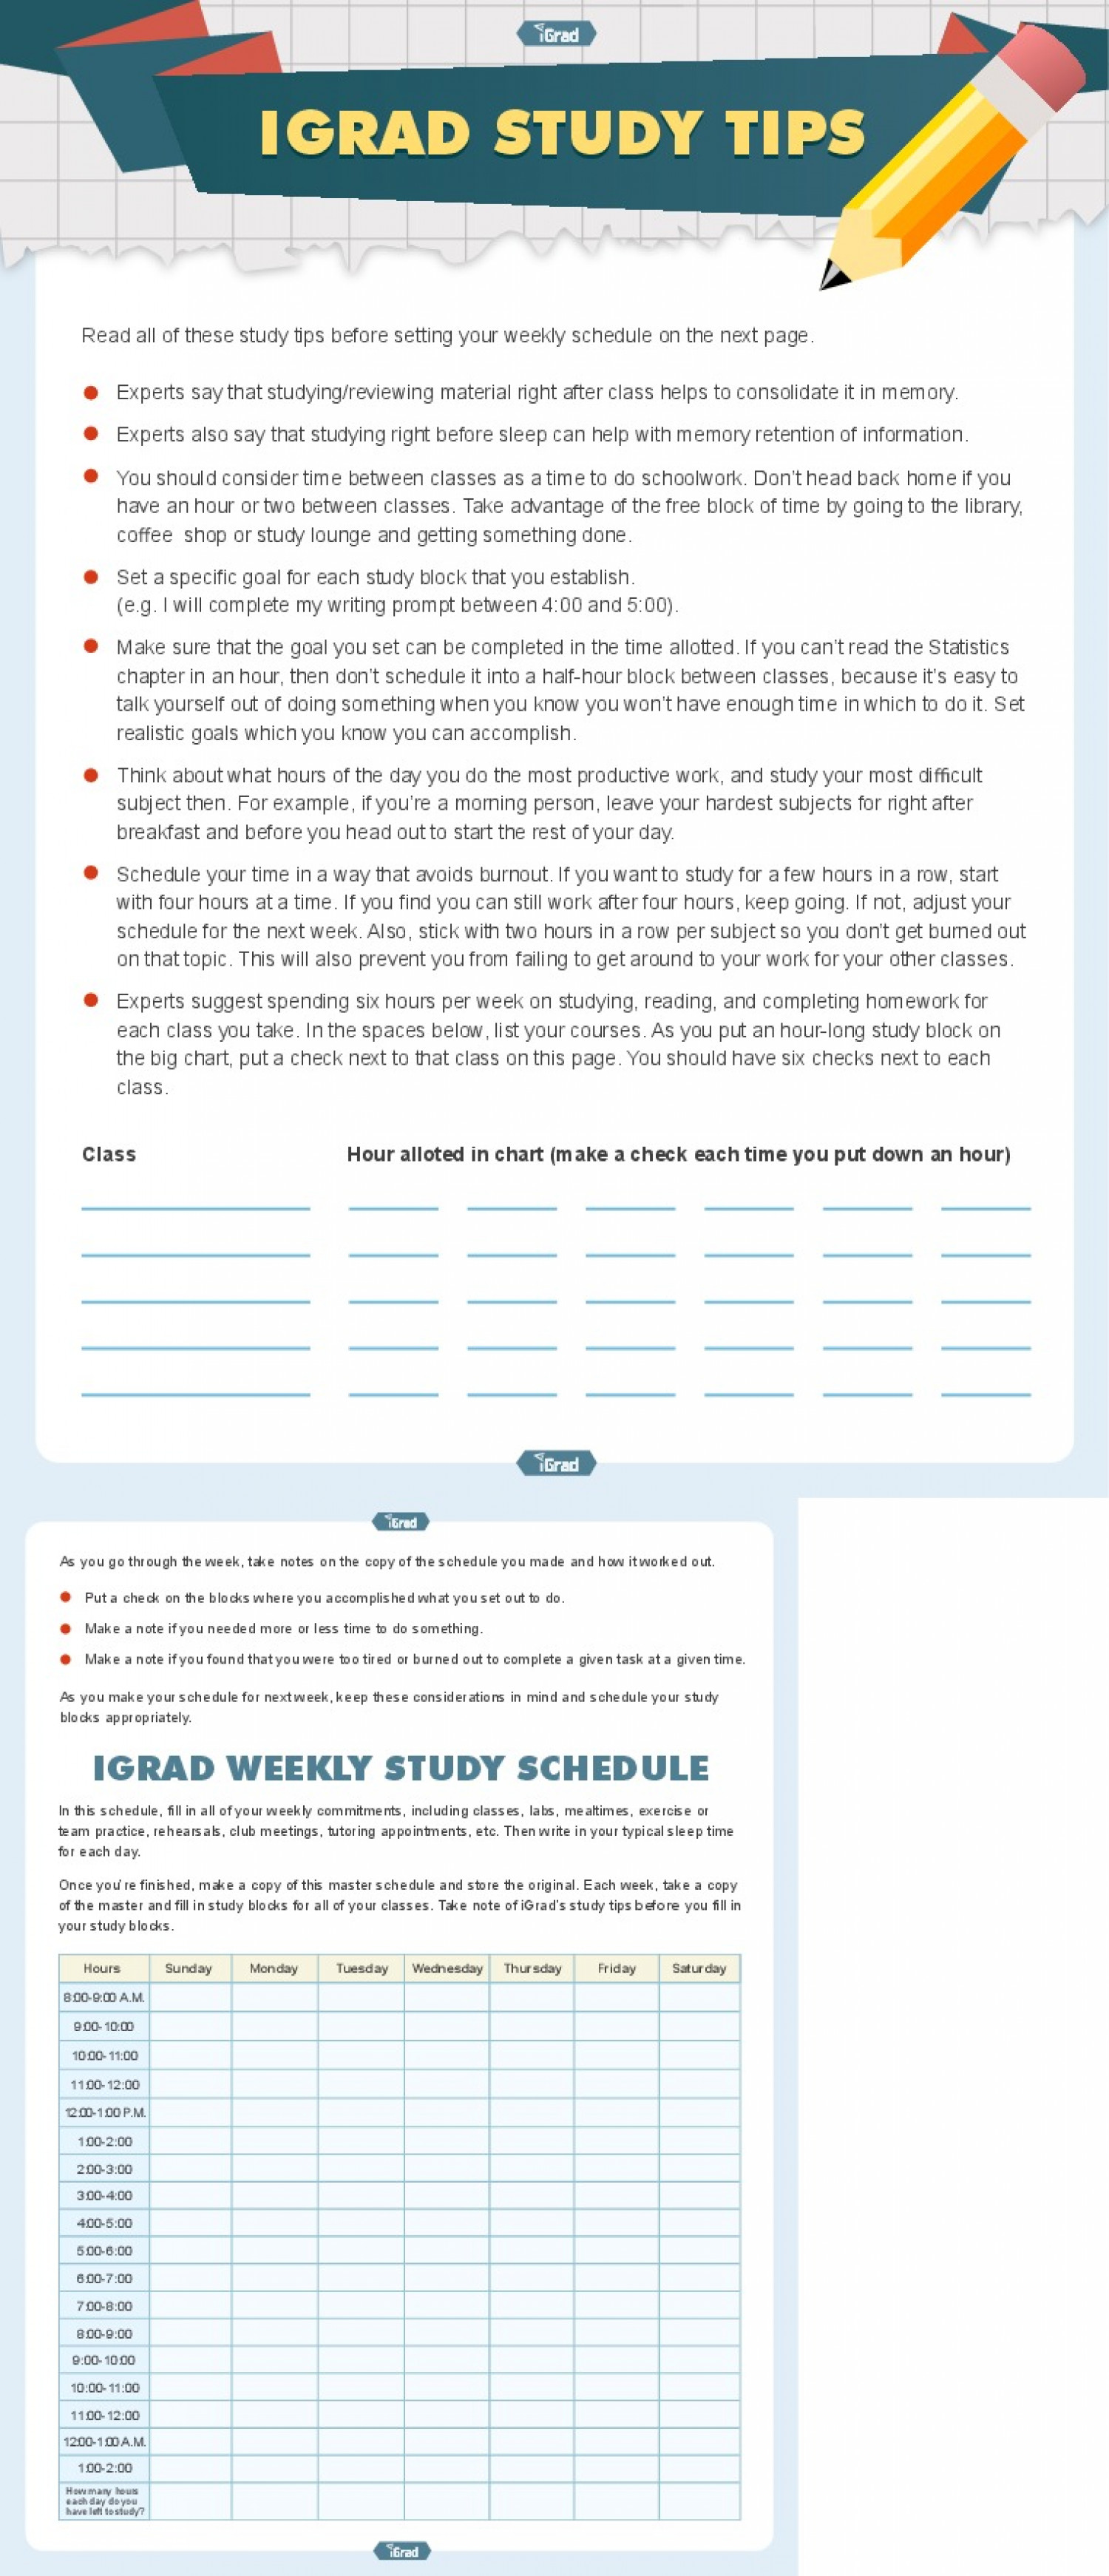 iGrad Study Tips Infographic